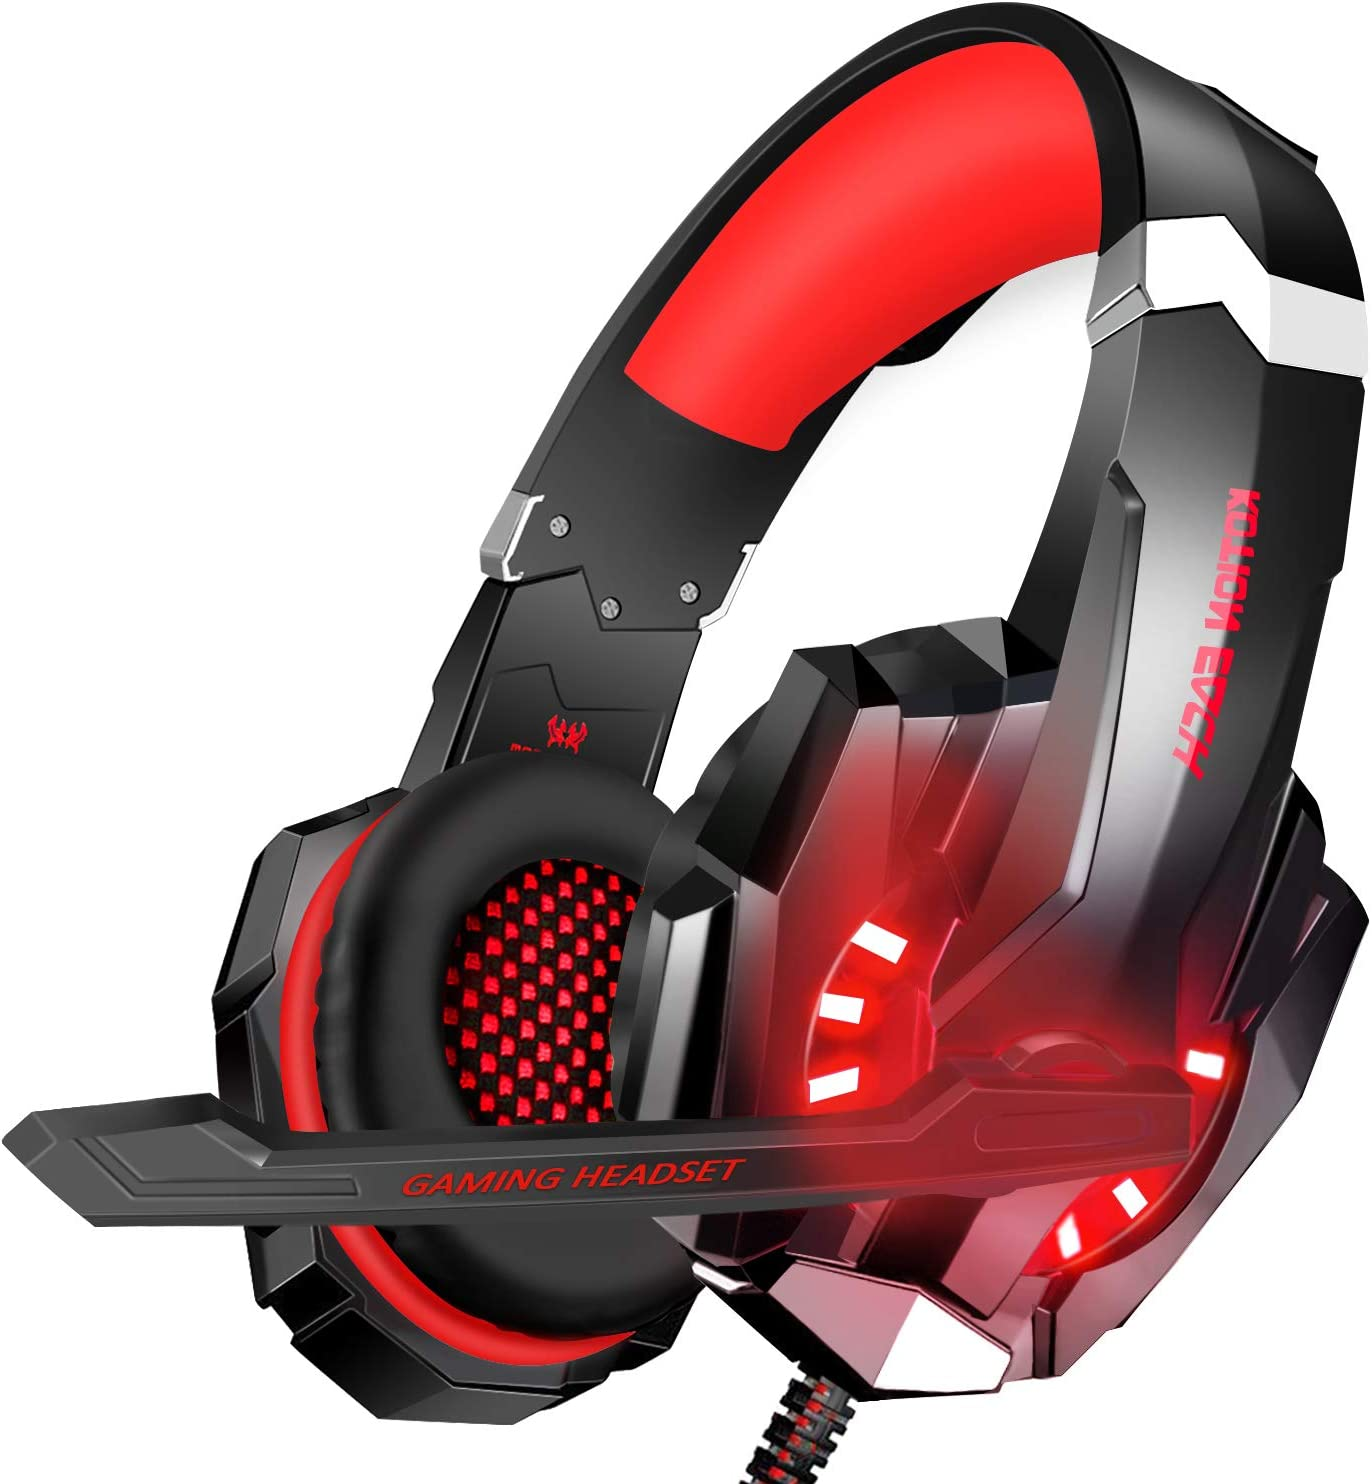 BlueFire Stereo Gaming Headset for PS4, PC, Xbox One Controller, Noise Cancelling Over Ear Headphones with Mic, LED Light, Bass Surround, Soft Memory Earmuffs for Laptop Nintendo Switch(Red)